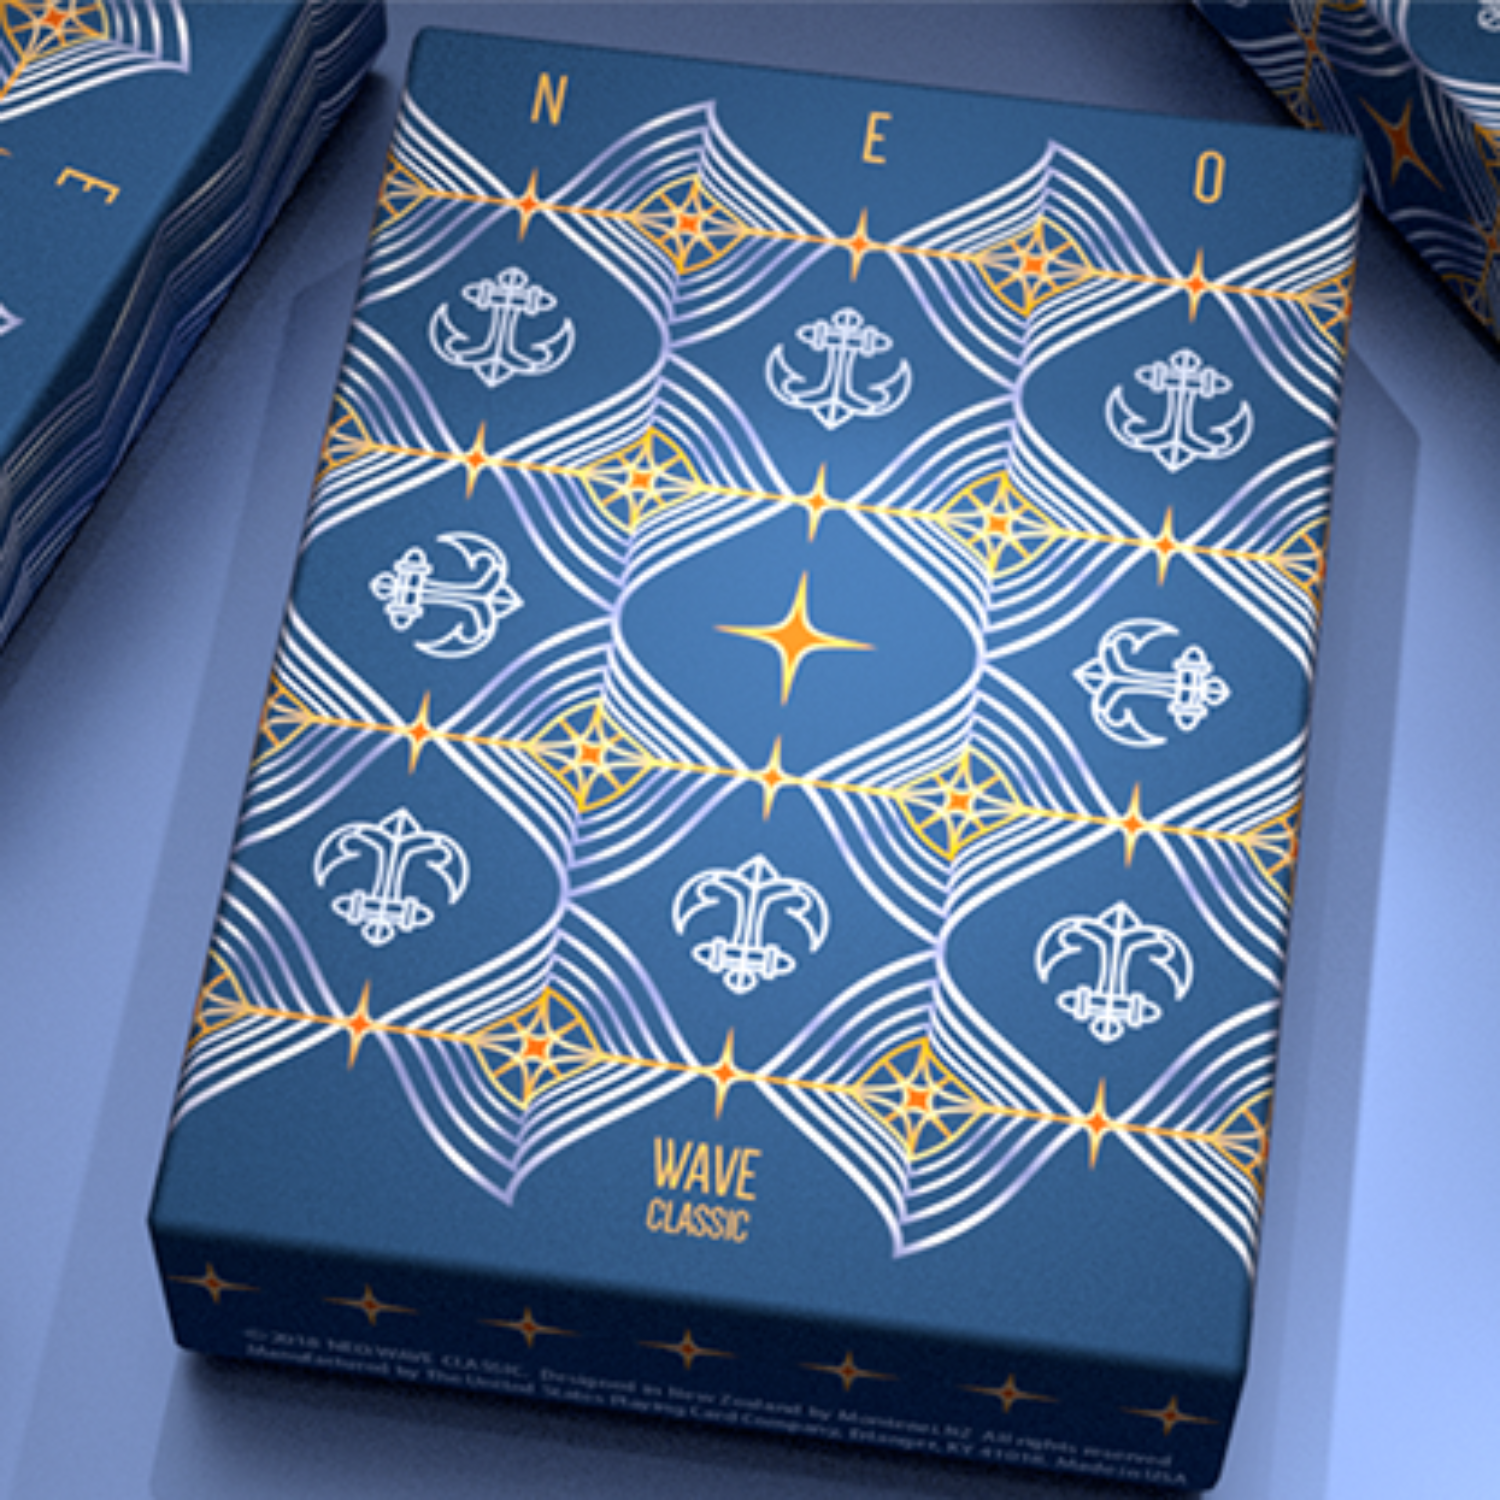 네오웨이브클래식 NEO:WAVE Classic Playing cards